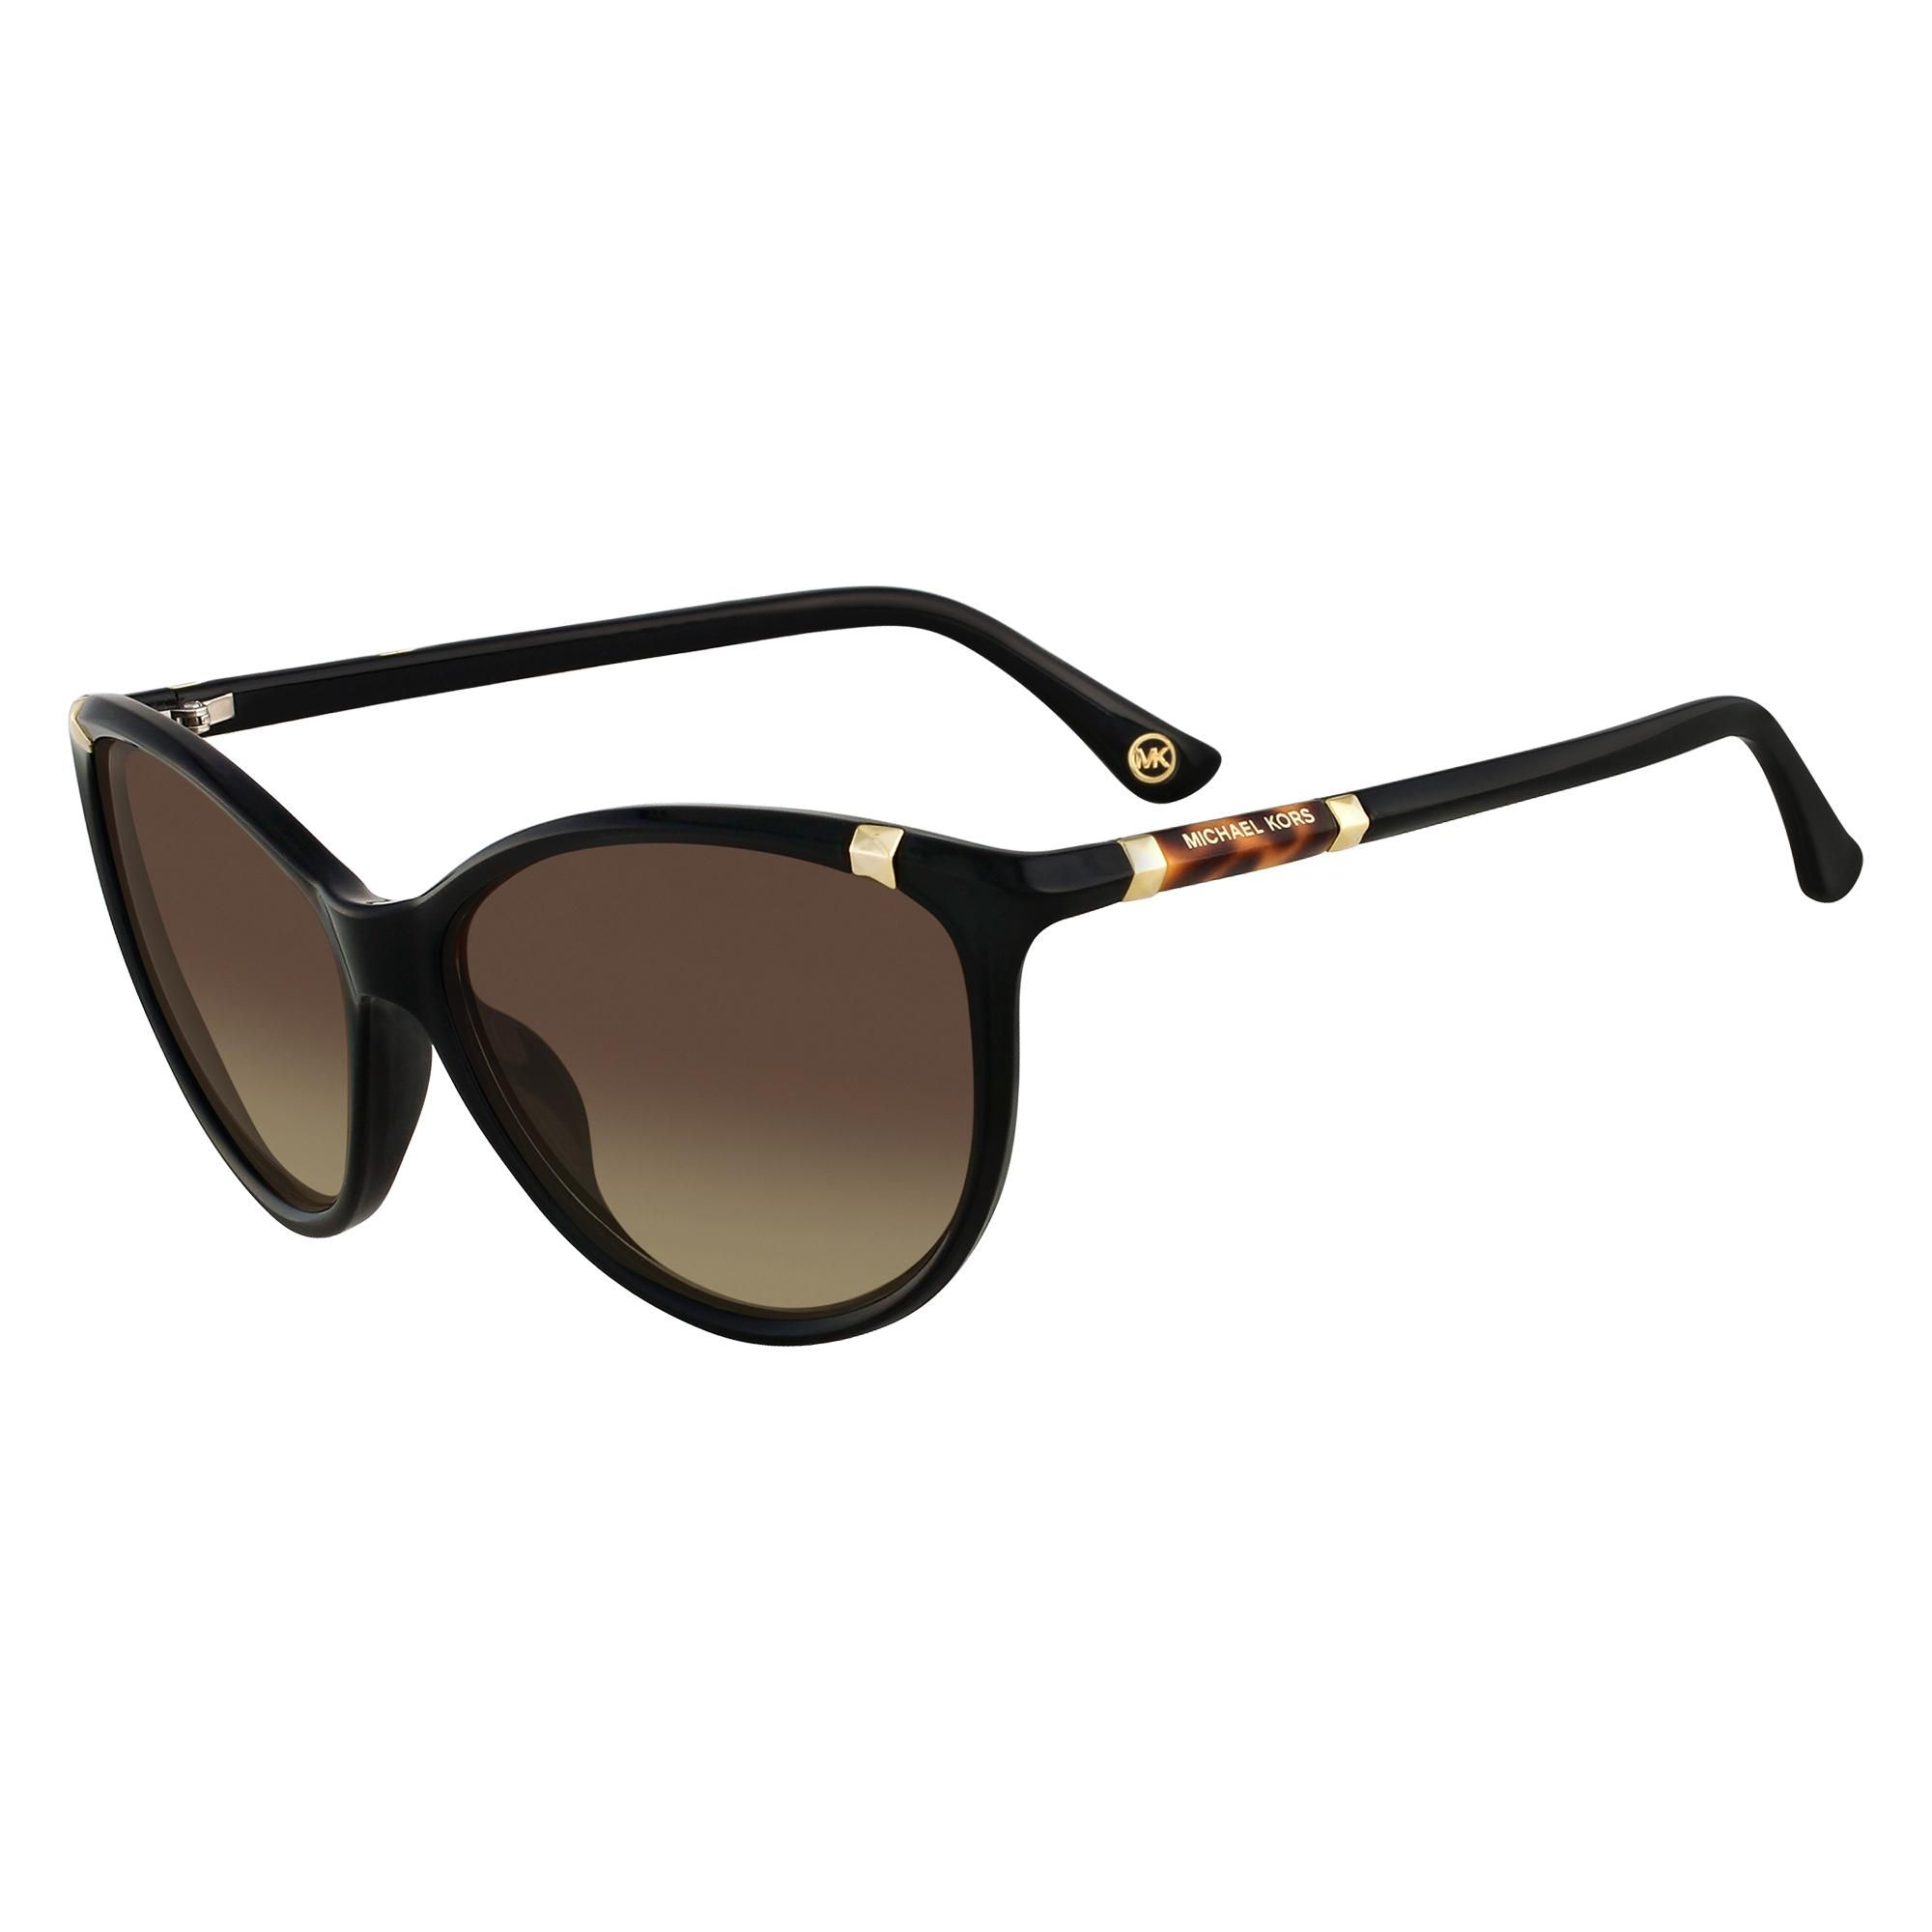 96766fa3ad Buy michael kors outlet sunglasses   OFF77% Discounted